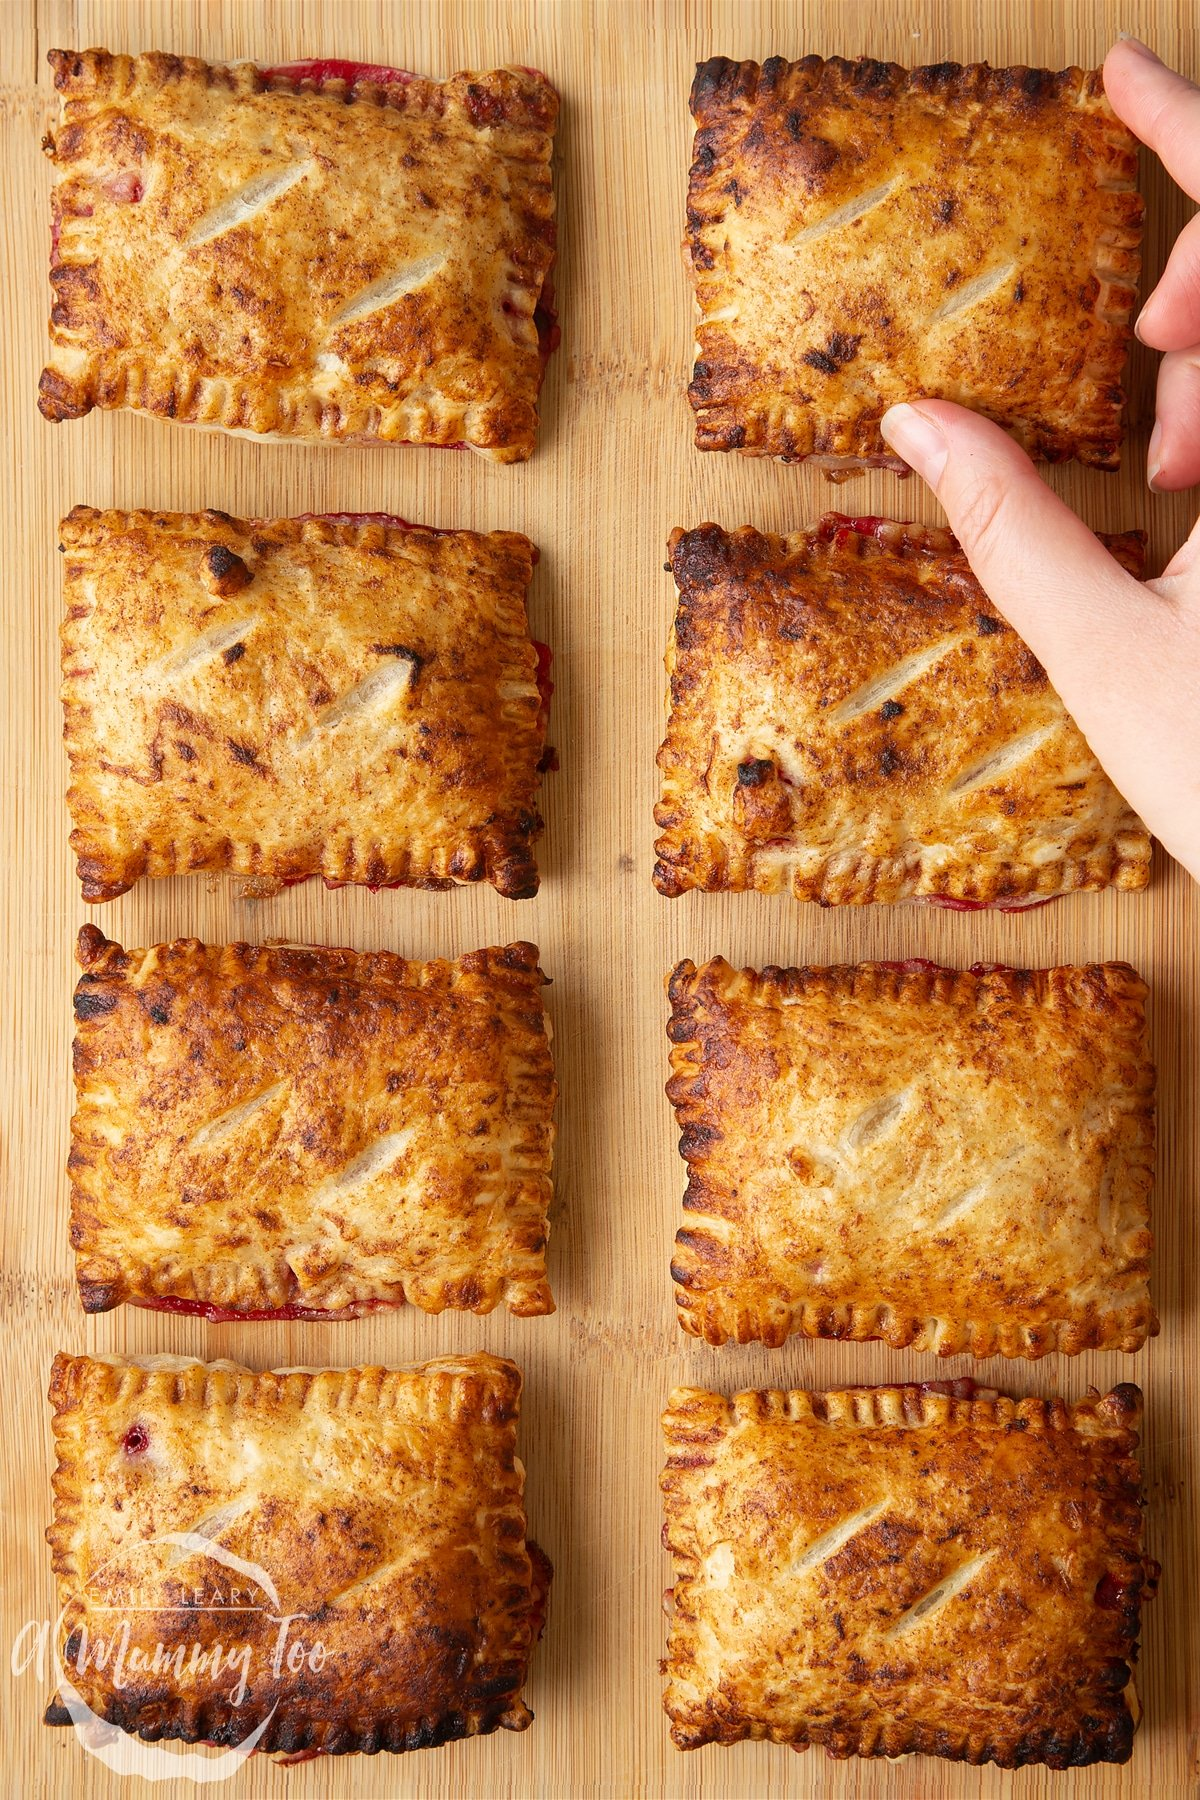 Eight plum pastries on a wooden board. A hand reaches to take the one in the top corner.